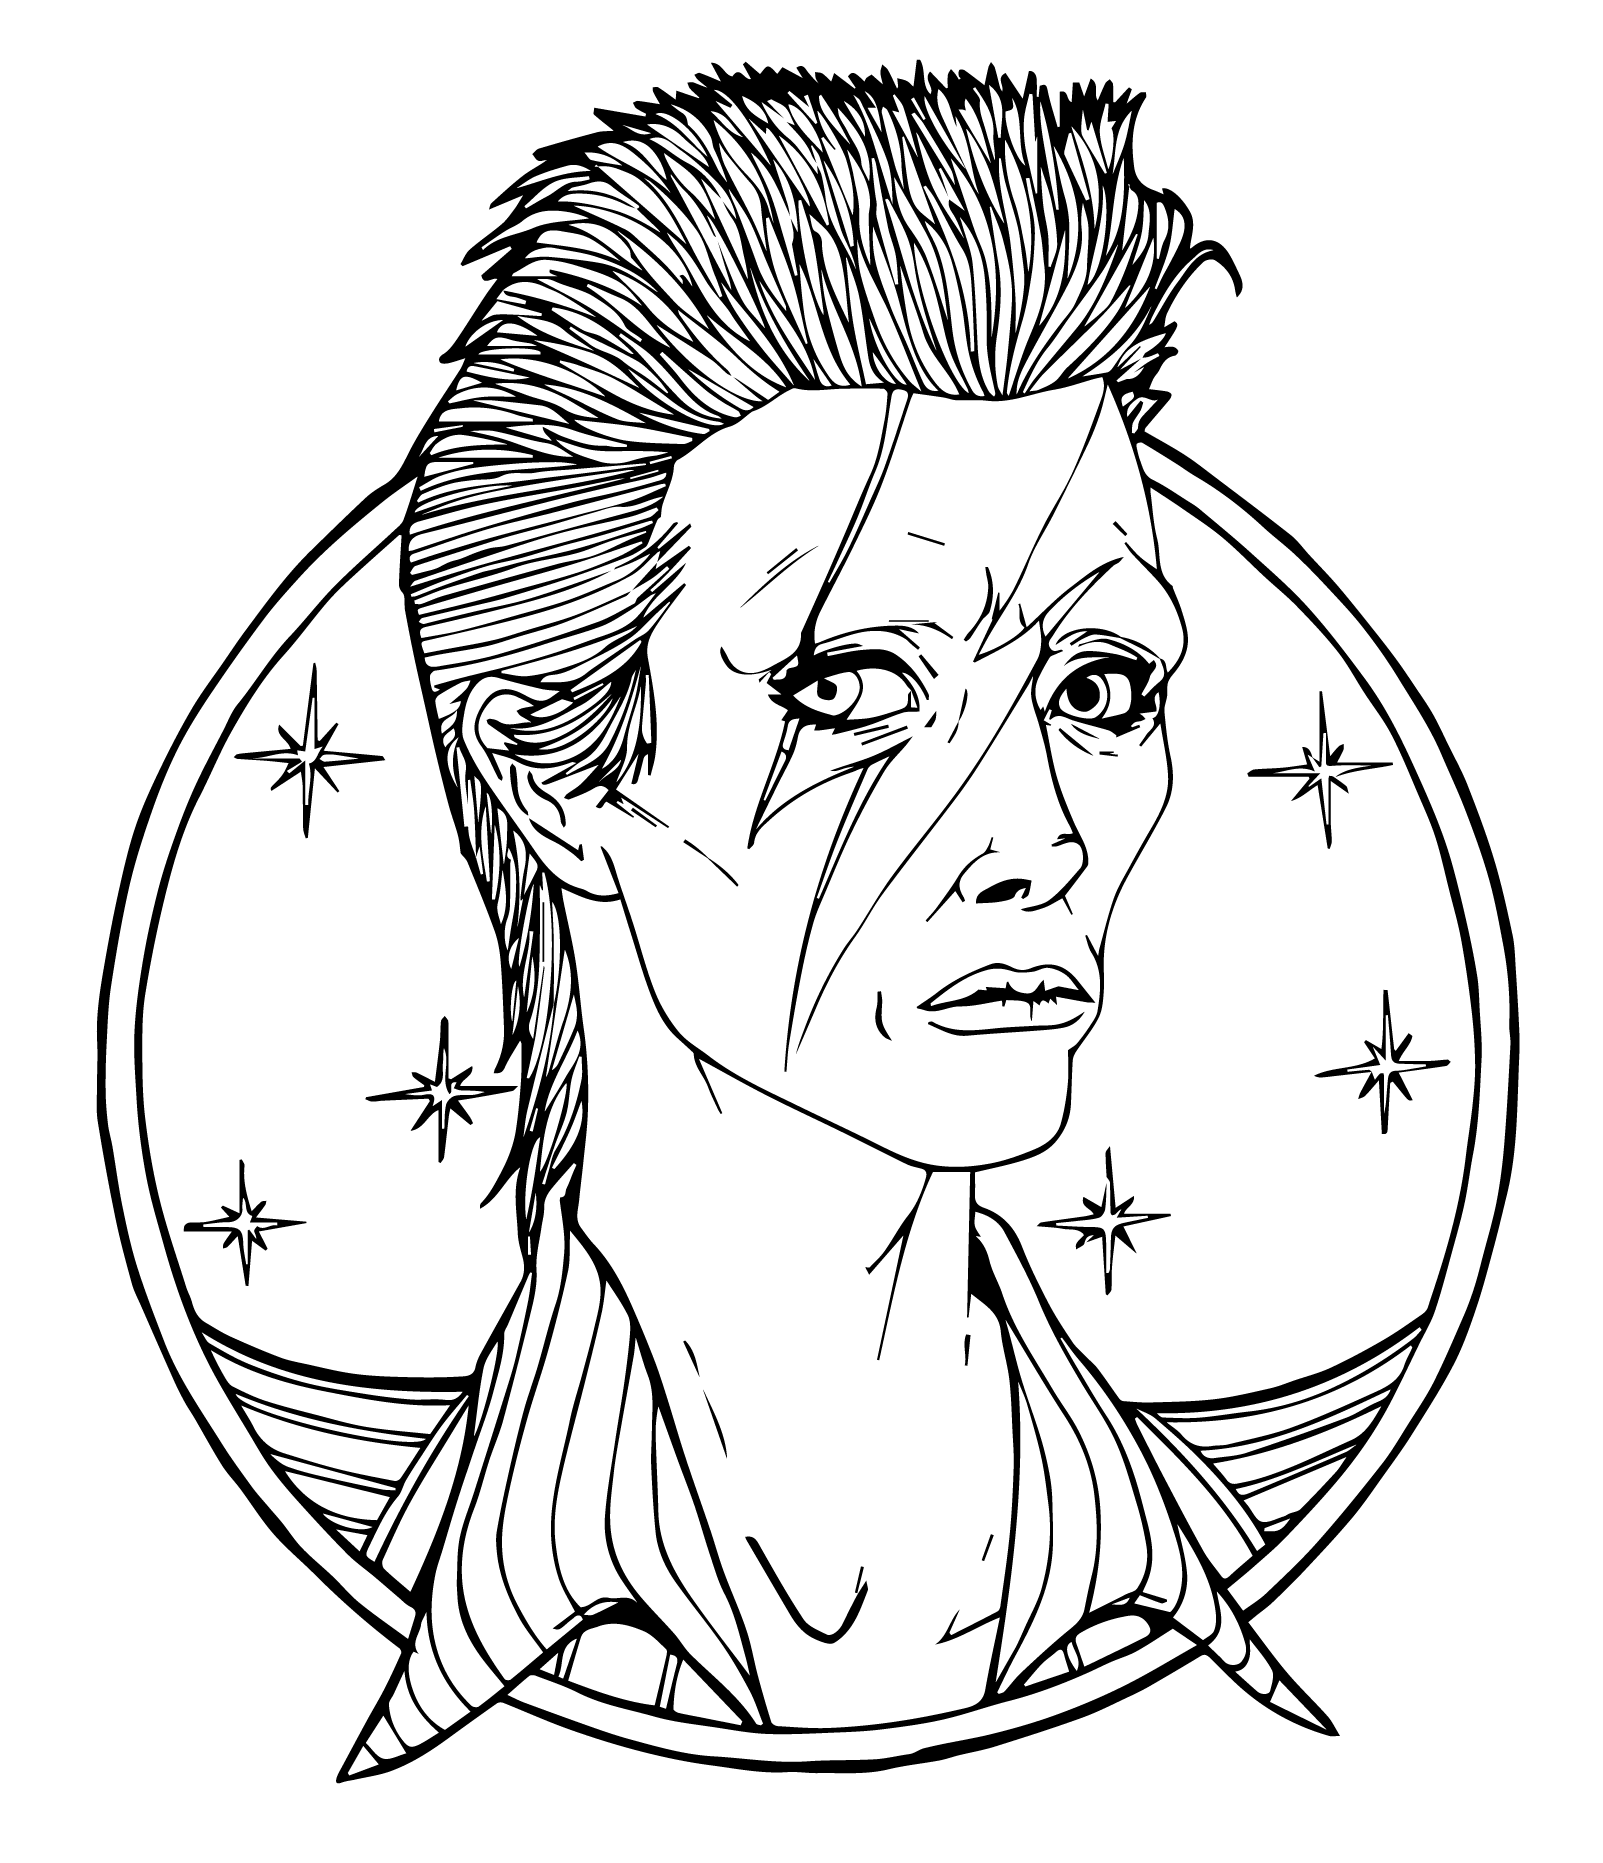 David Bowie illustration by Austinbased